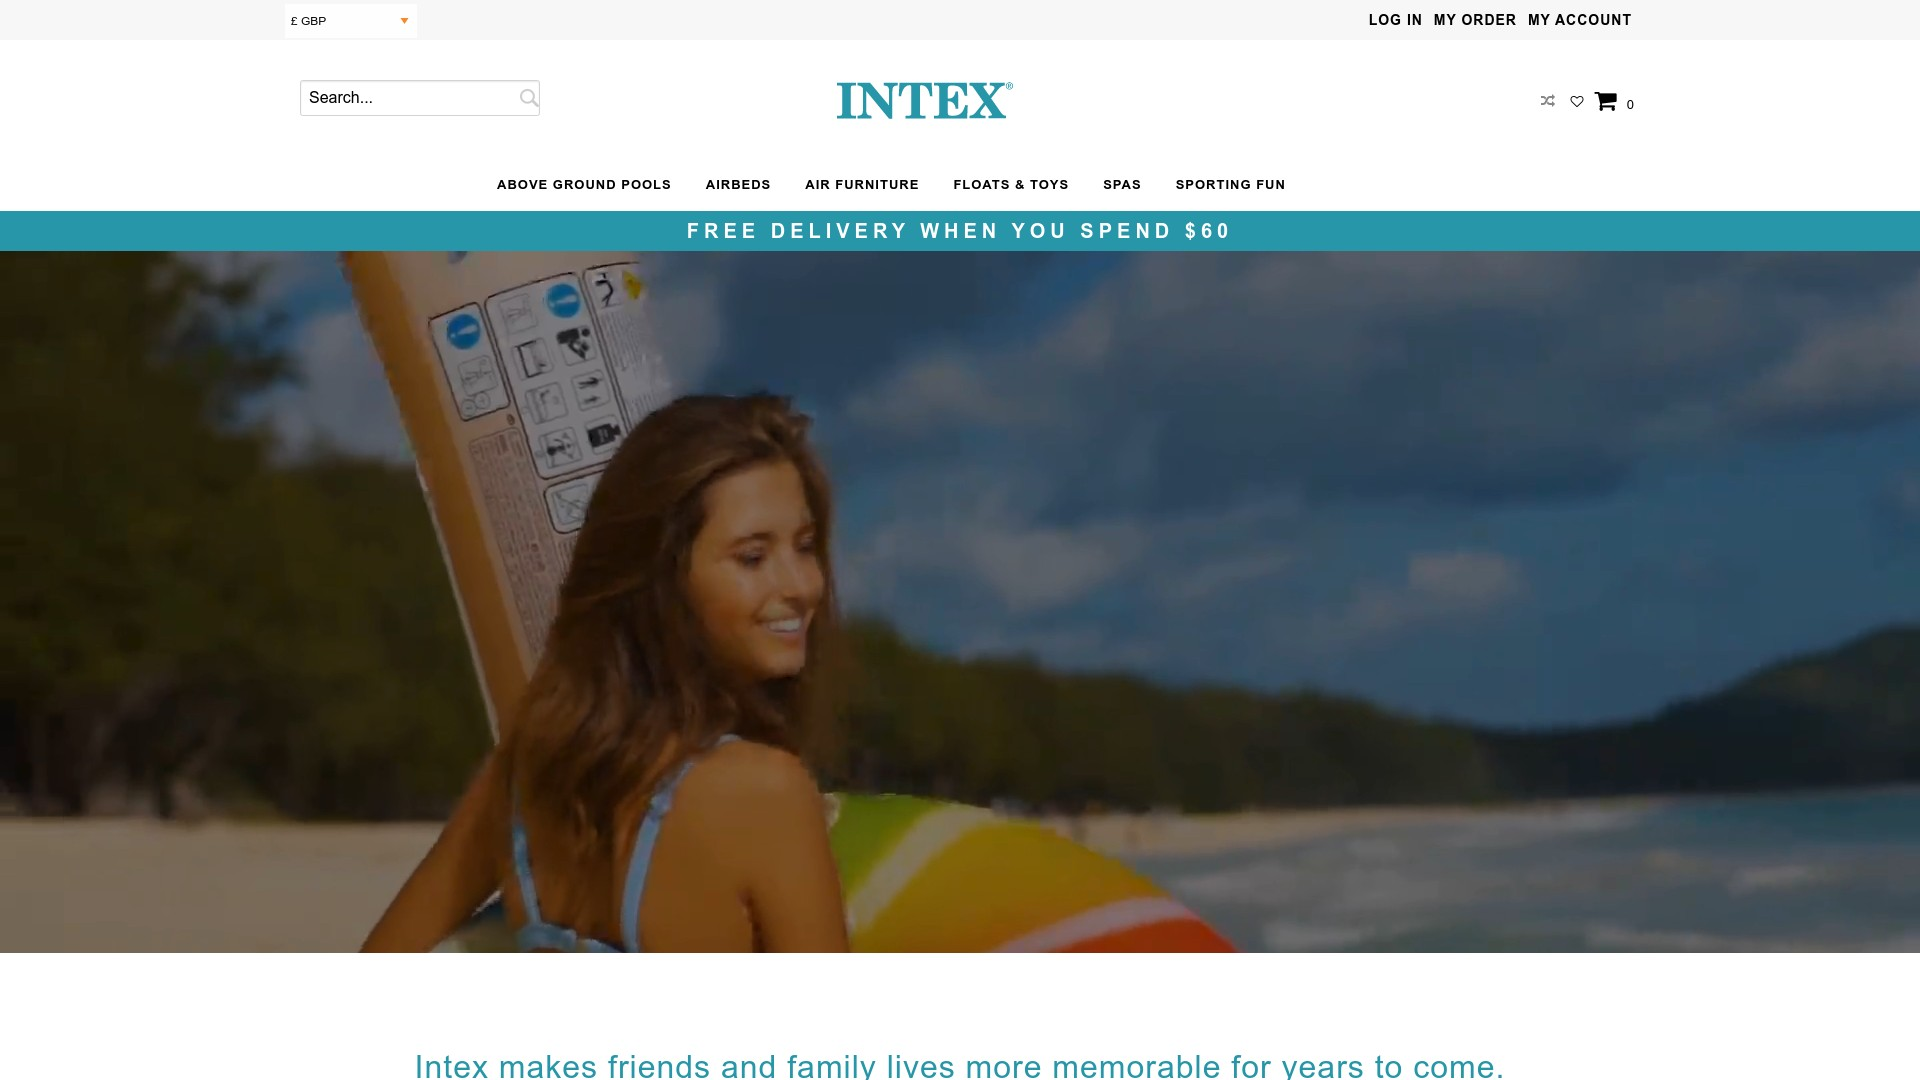 Is Intexshopgo a Scam? See the Review of the Online Store